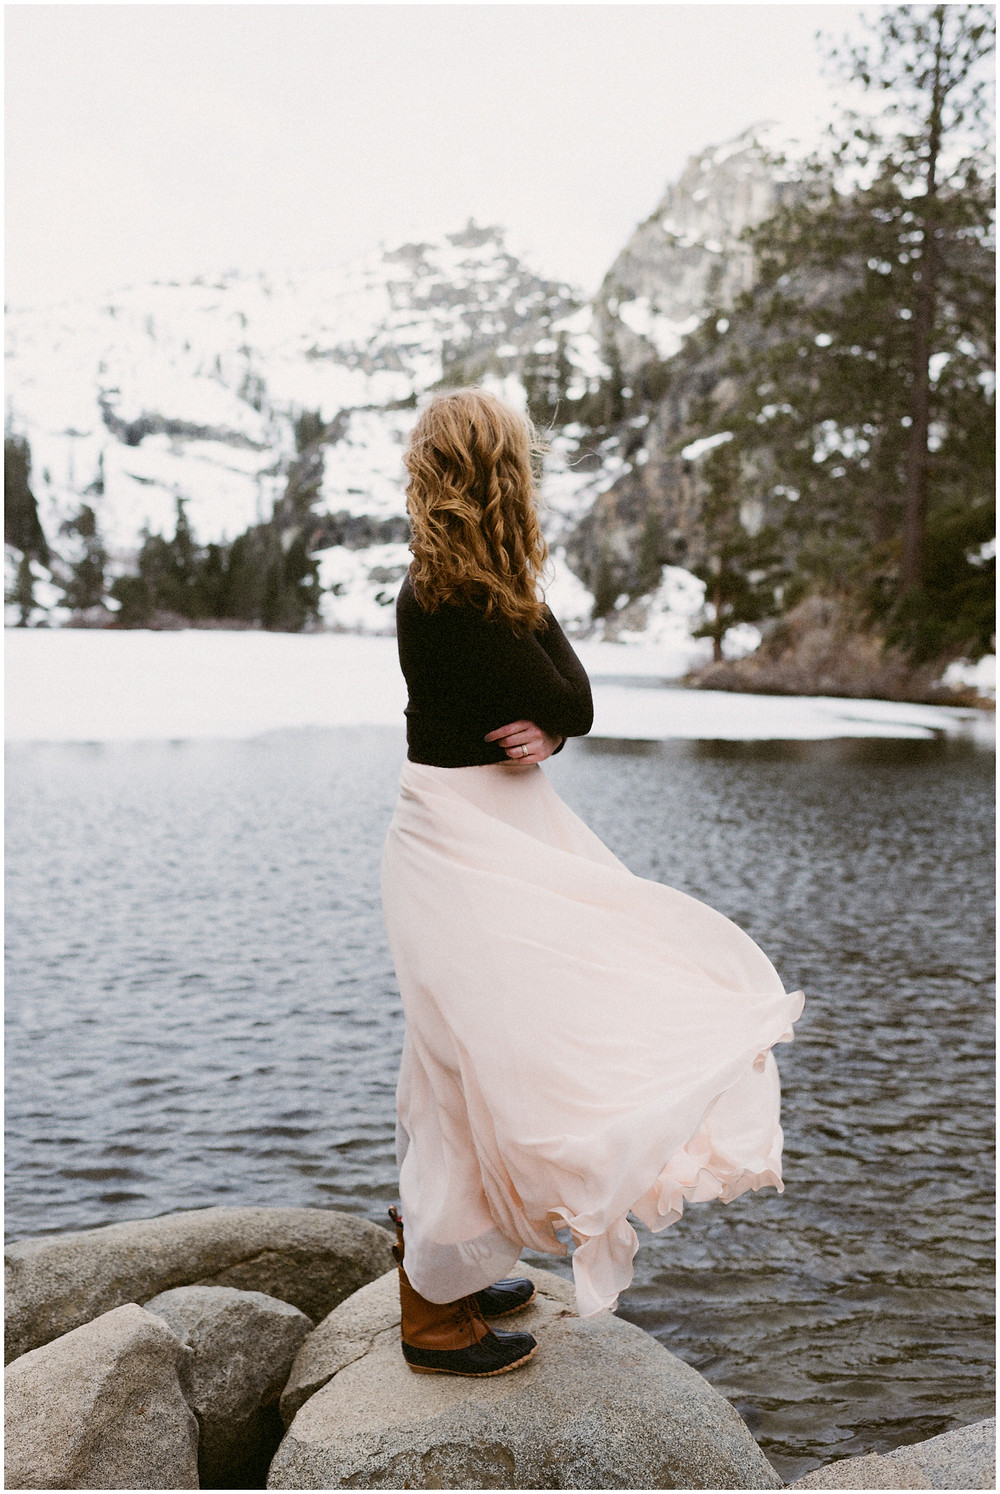 Outdoor elopement photographer in Lake Tahoe